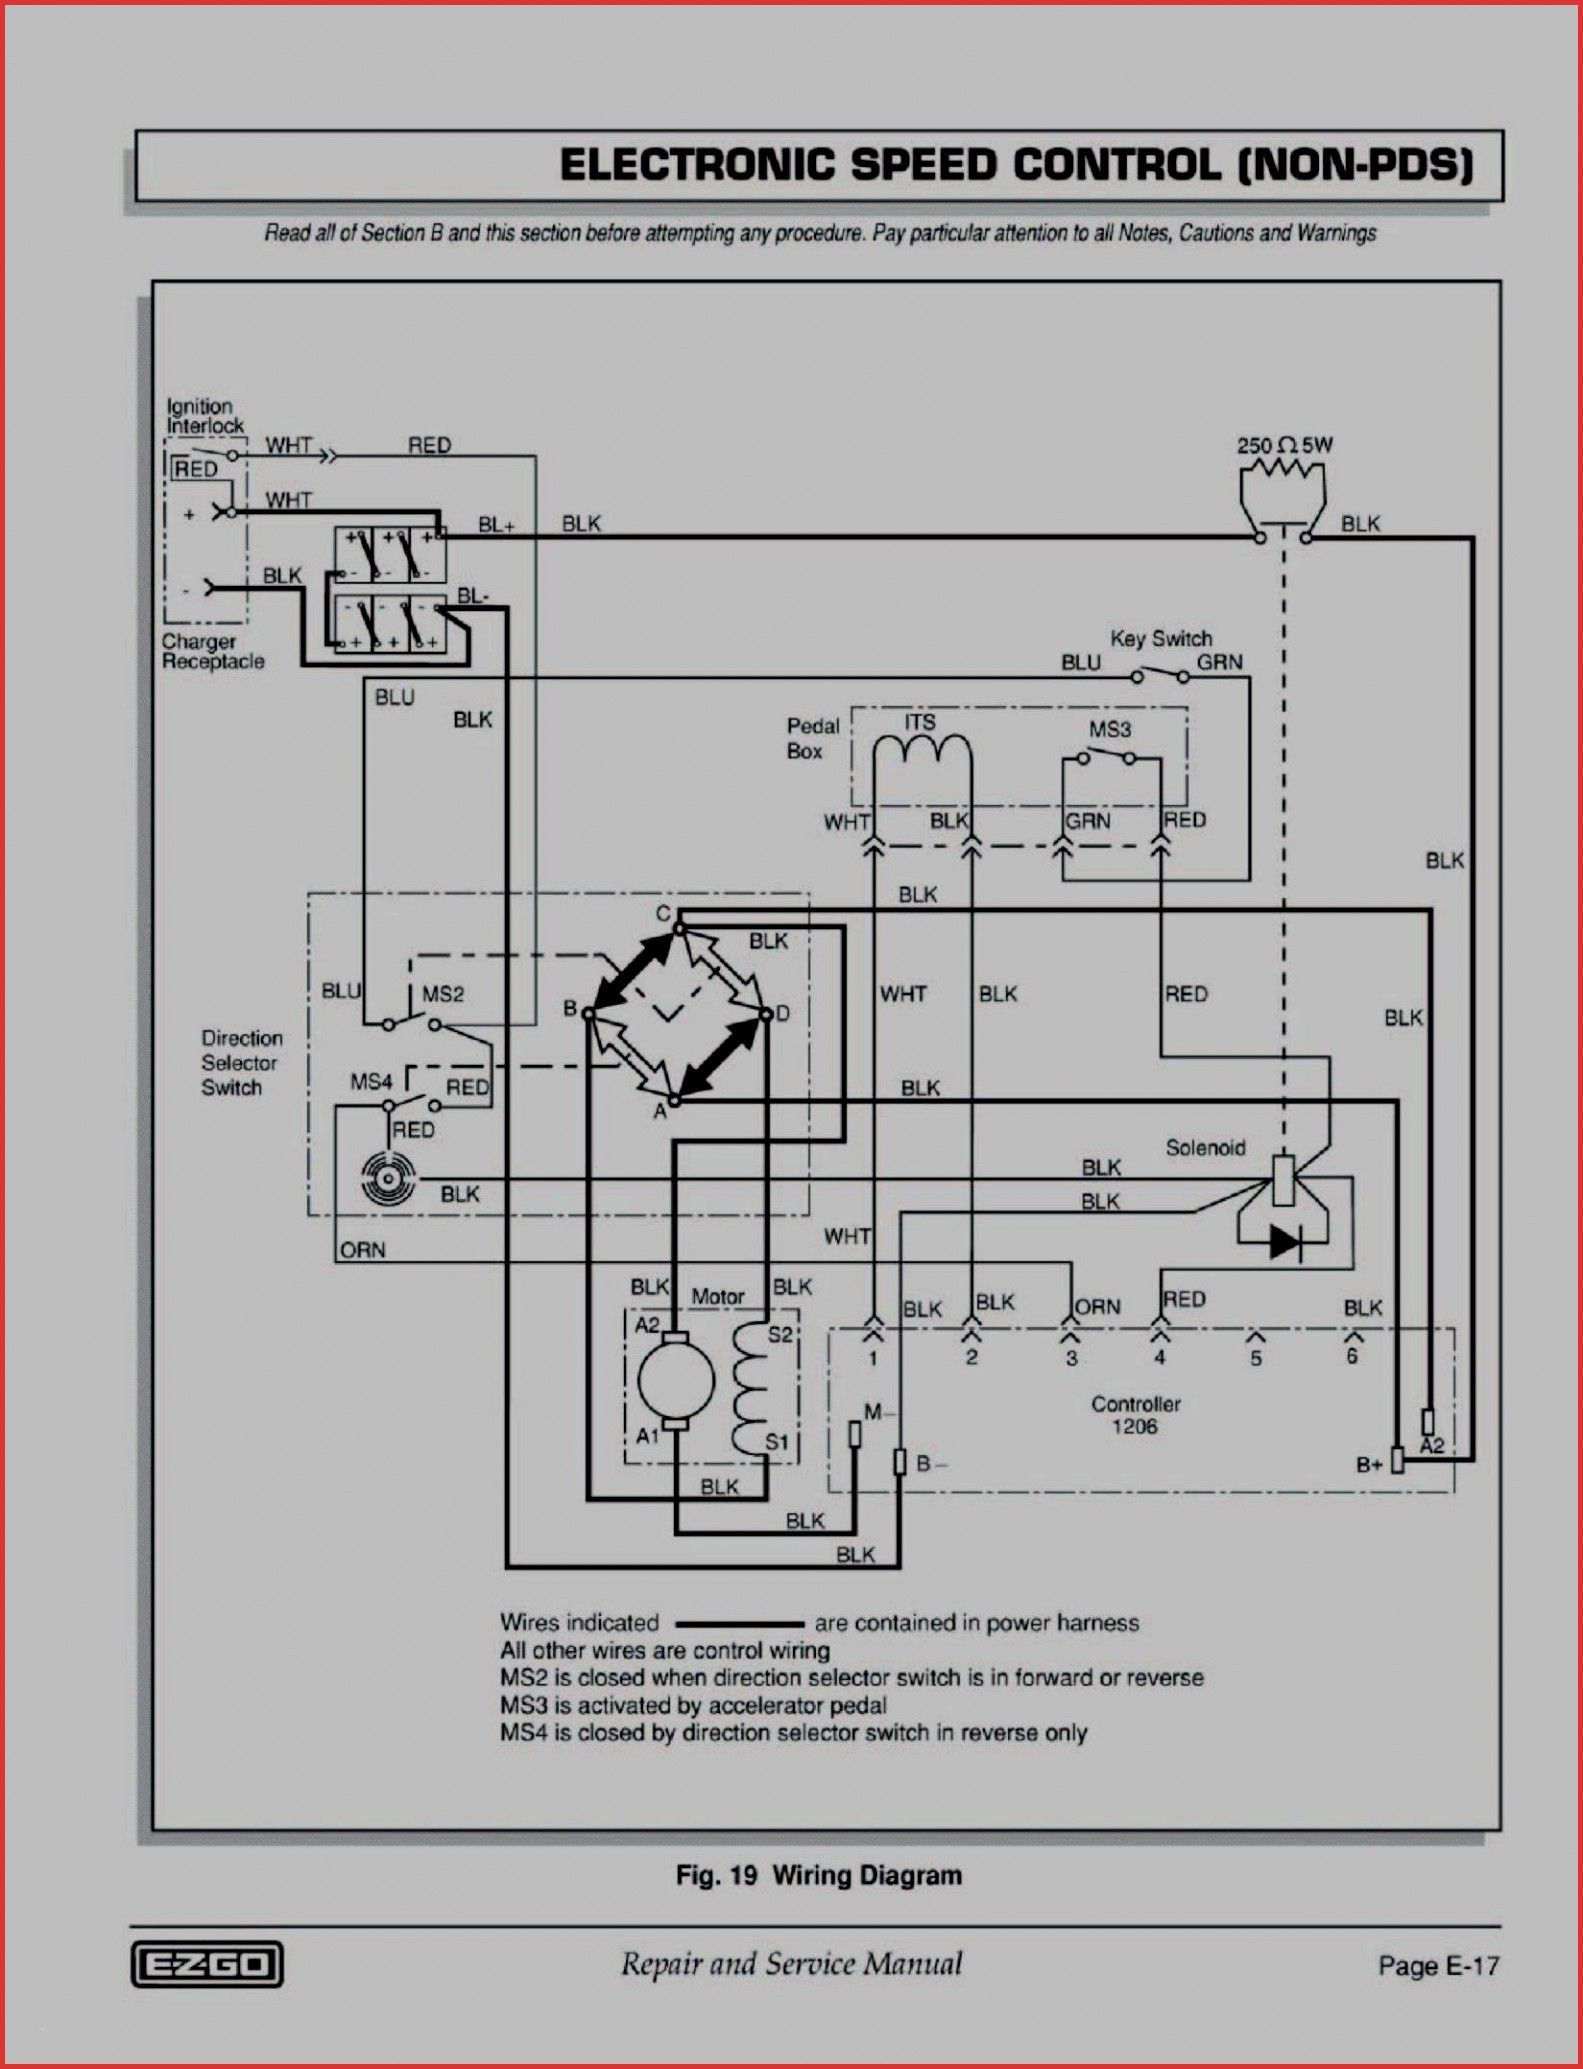 Diagram Ez Go Speed Controller Wiring Diagram Full Version Hd Quality Wiring Diagram Diagramkateso Camerachiaraimage It